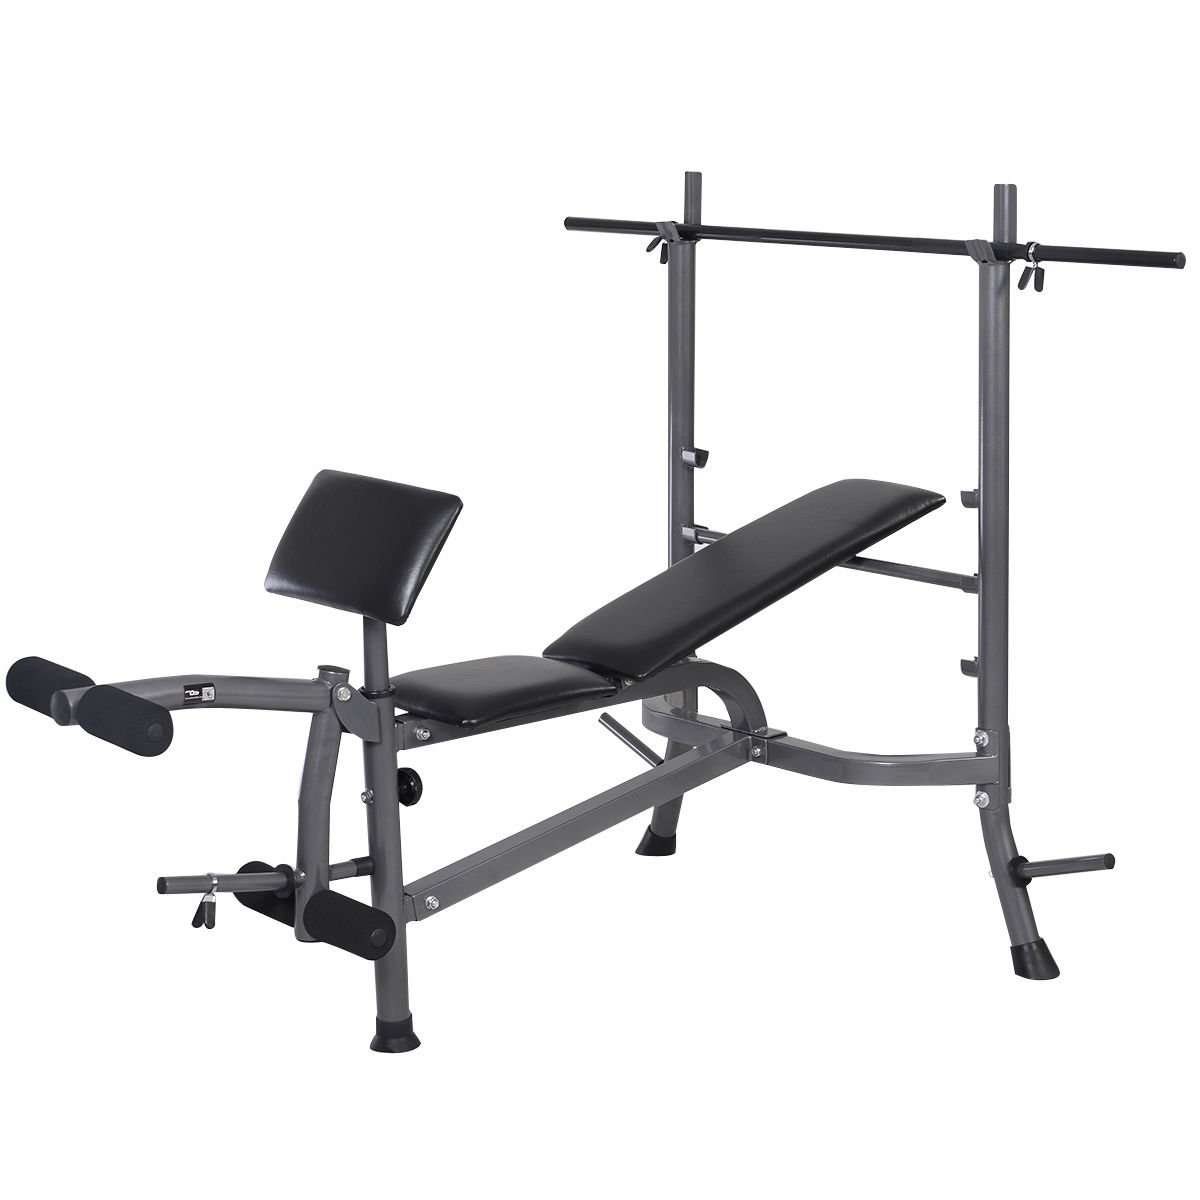 UBRTools Weight Lifting Bench Fitness Body Workout Home Exercise w/Bar by UBRTools